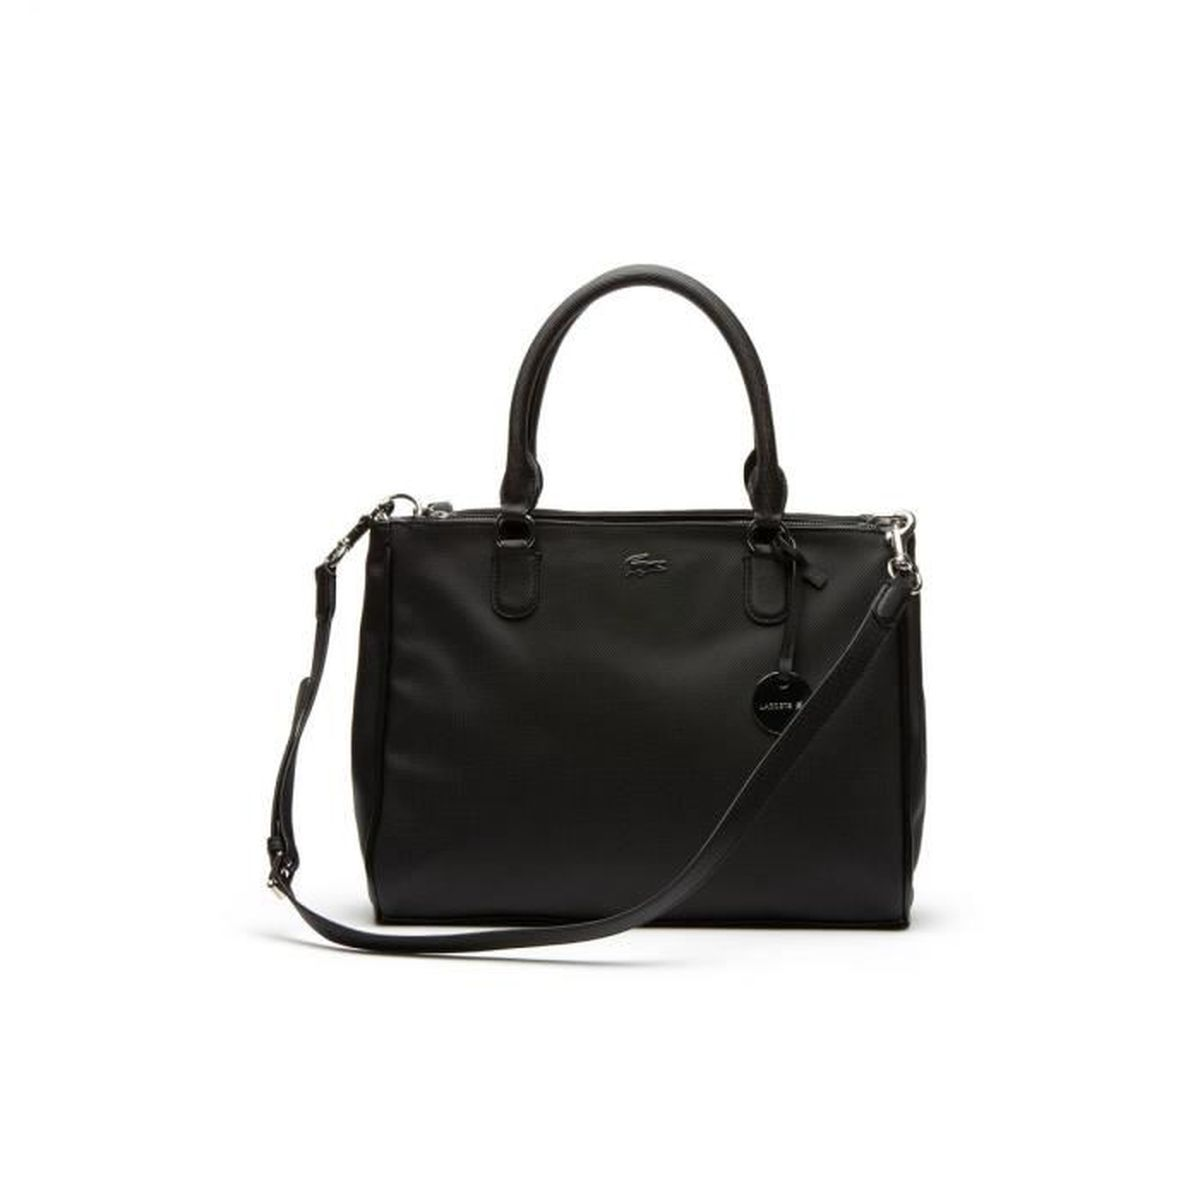 1bfff2473c Lacoste - Sac à main Daily classic (nf1362dc) black 000 taille 26 cm ...